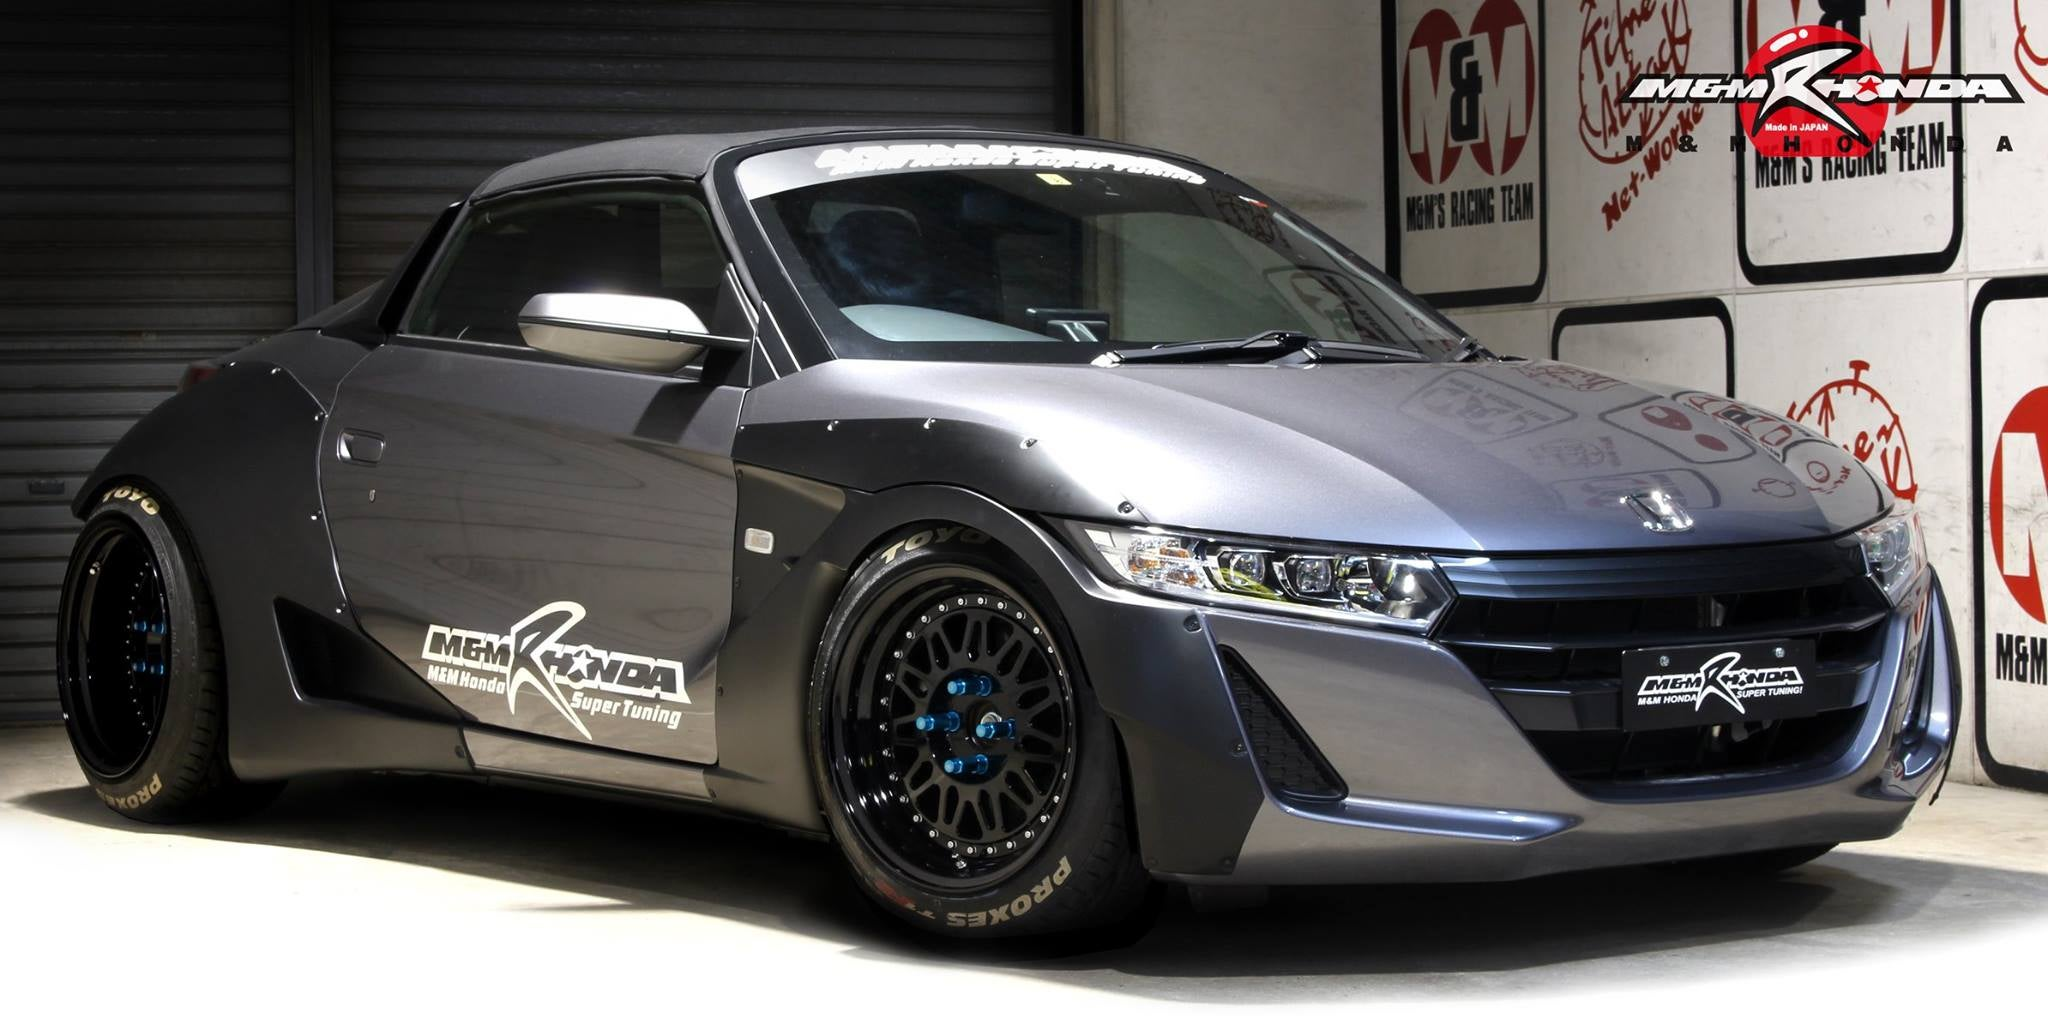 We Drive the Honda S660: Be Careful What You Wish For | Articles ...